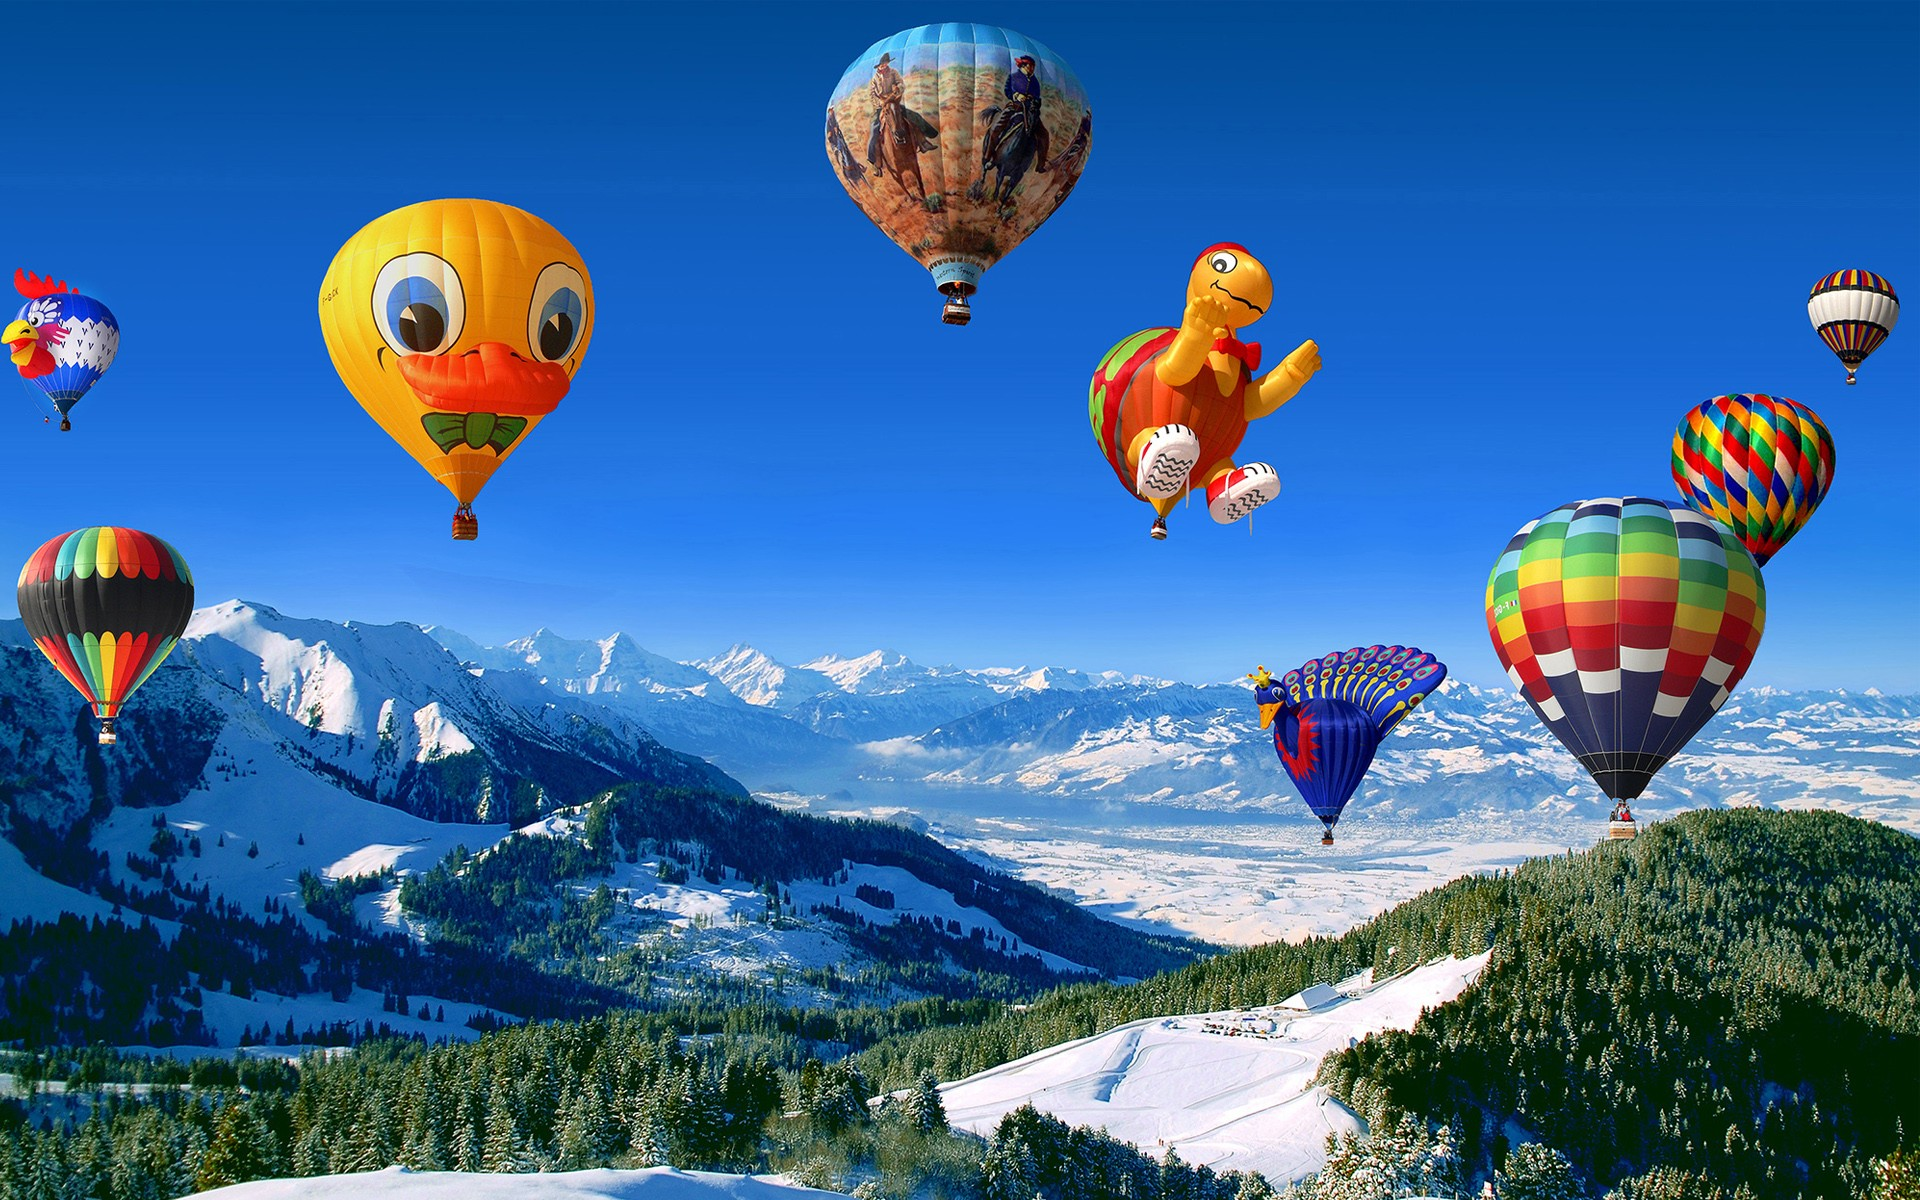 1366x768 hot air balloon 1366x768 resolution hd 4k wallpapers